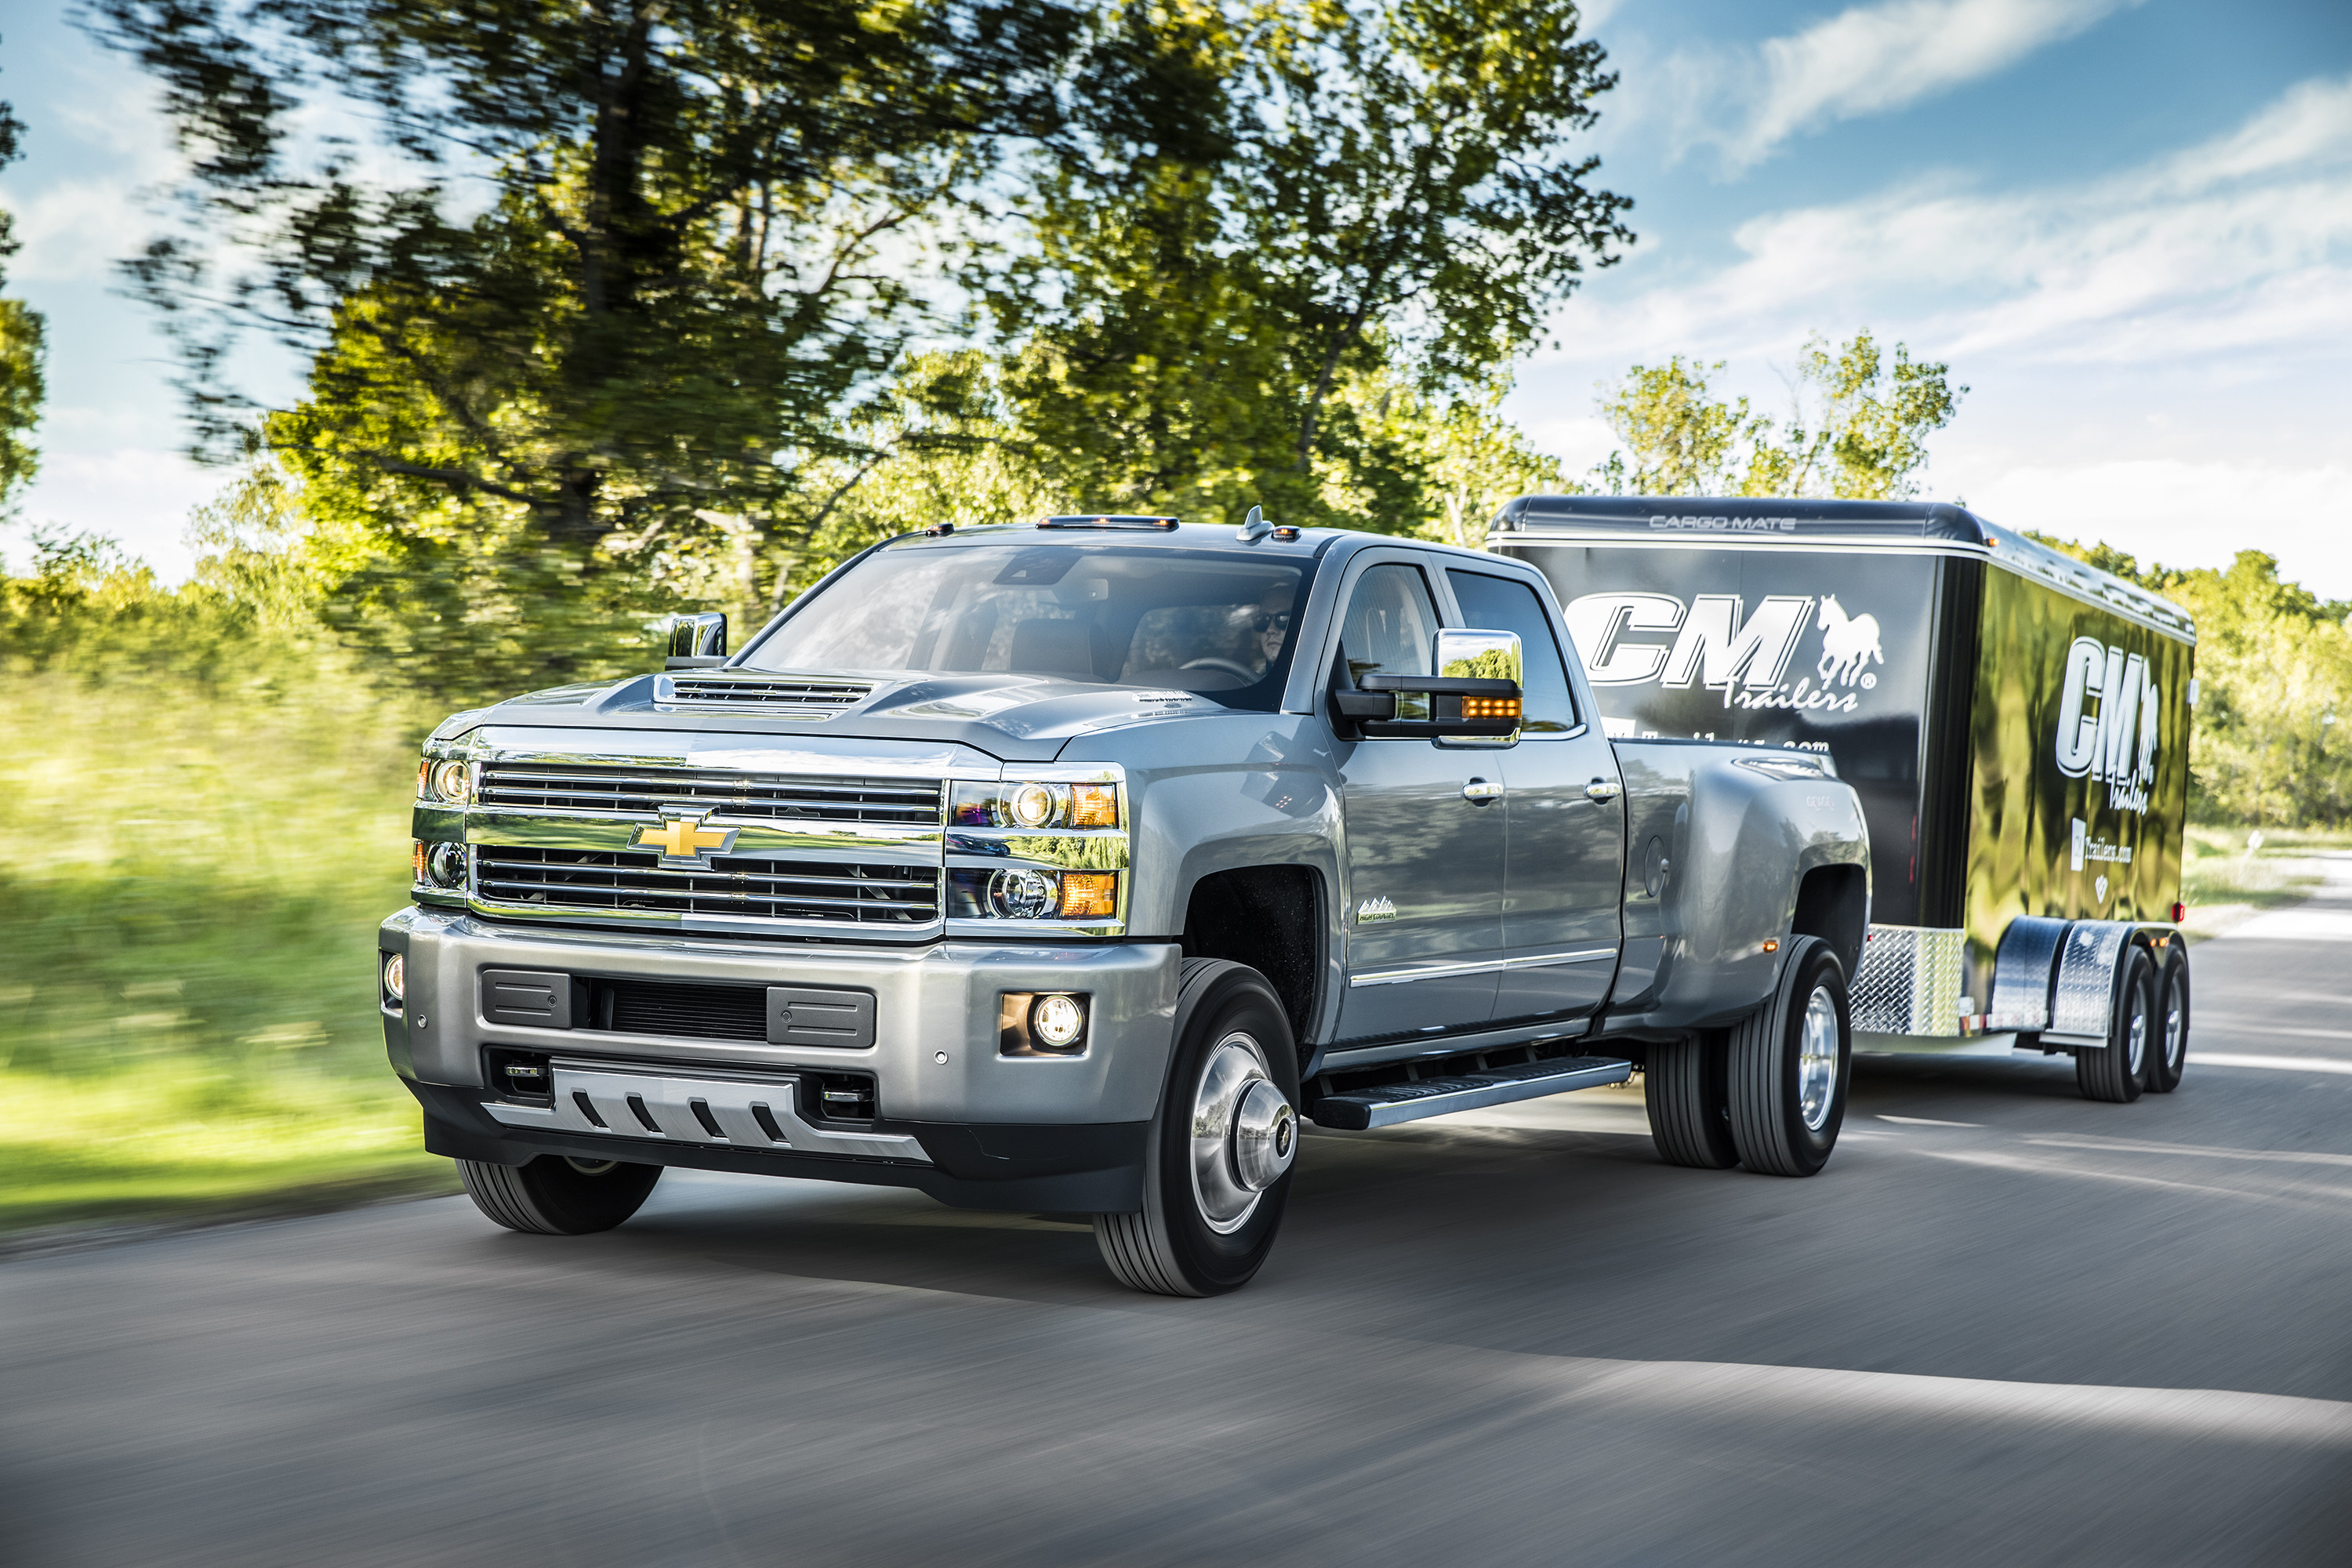 3000x2000 2017 Chevrolet Silverado 3500hd Wallpaper HD